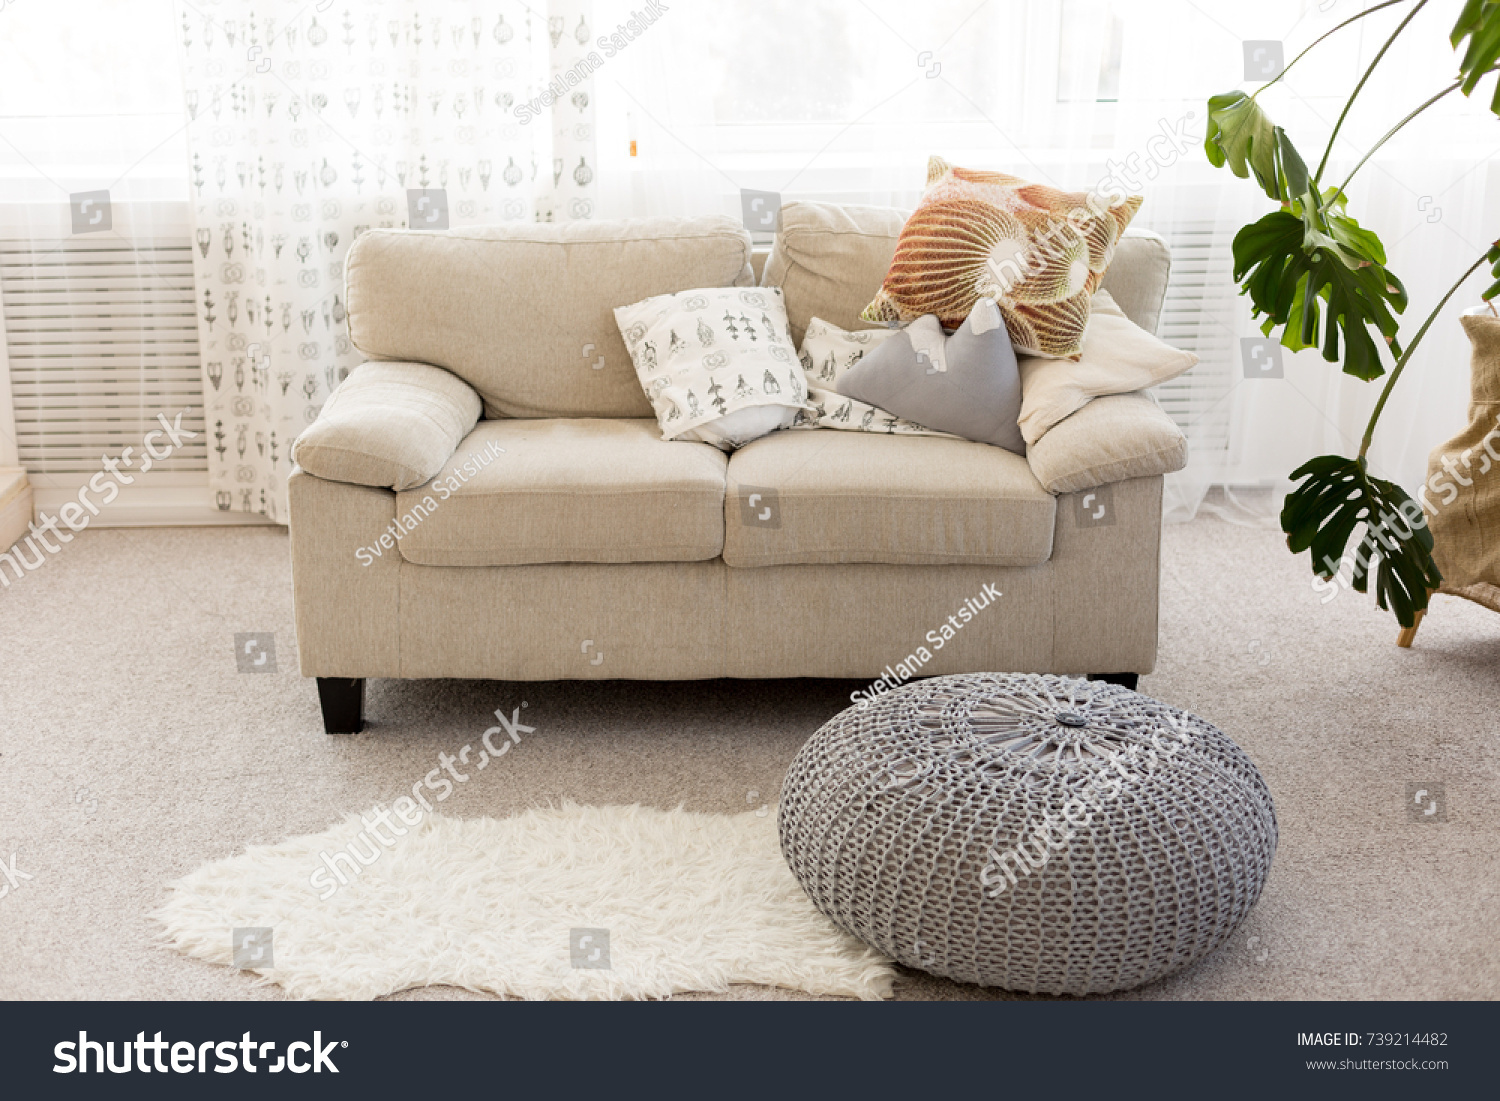 Bright Interior. Beige Sofa With Pillows And Gray Pouffe. Big Flower Room  By The